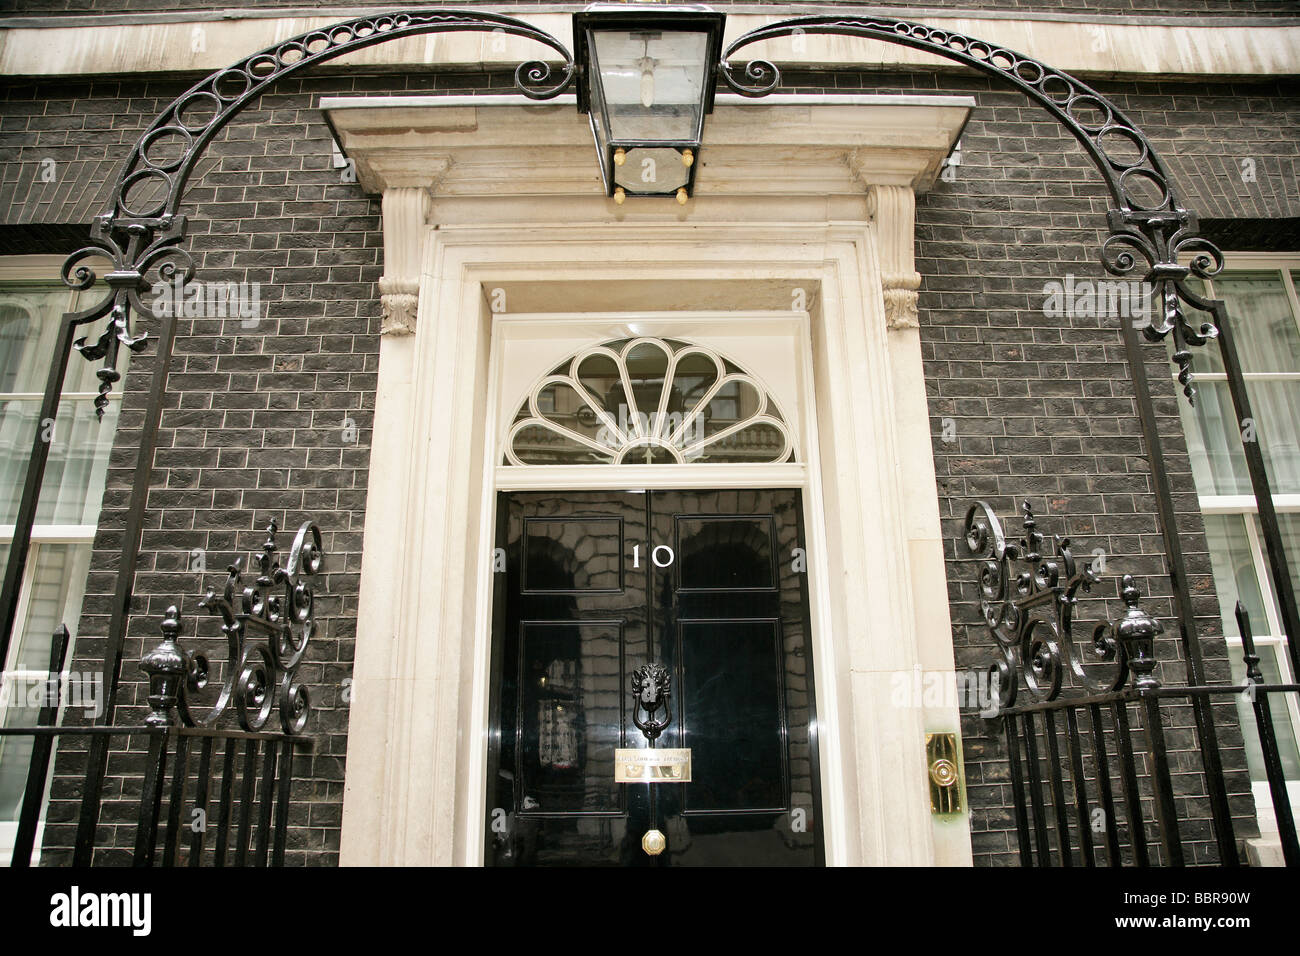 The front door of number 10 Downing Street Prime Ministers residence London, England, UK - Stock Image